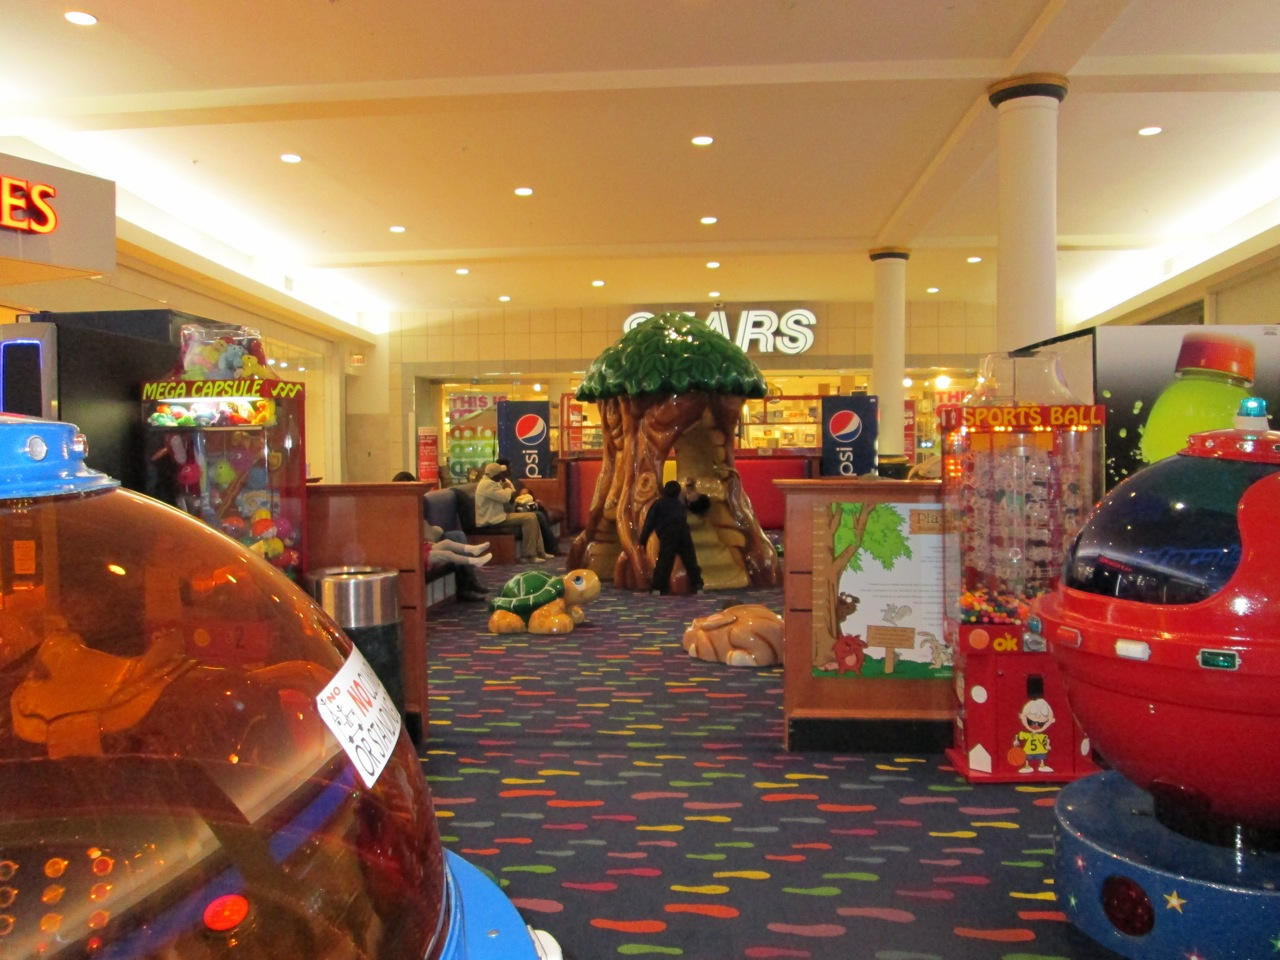 Ride On Toys For Older Kids >> The Stir Crazy Moms' Guide to Durham: Crabtree Valley Mall Play Area-Renovated